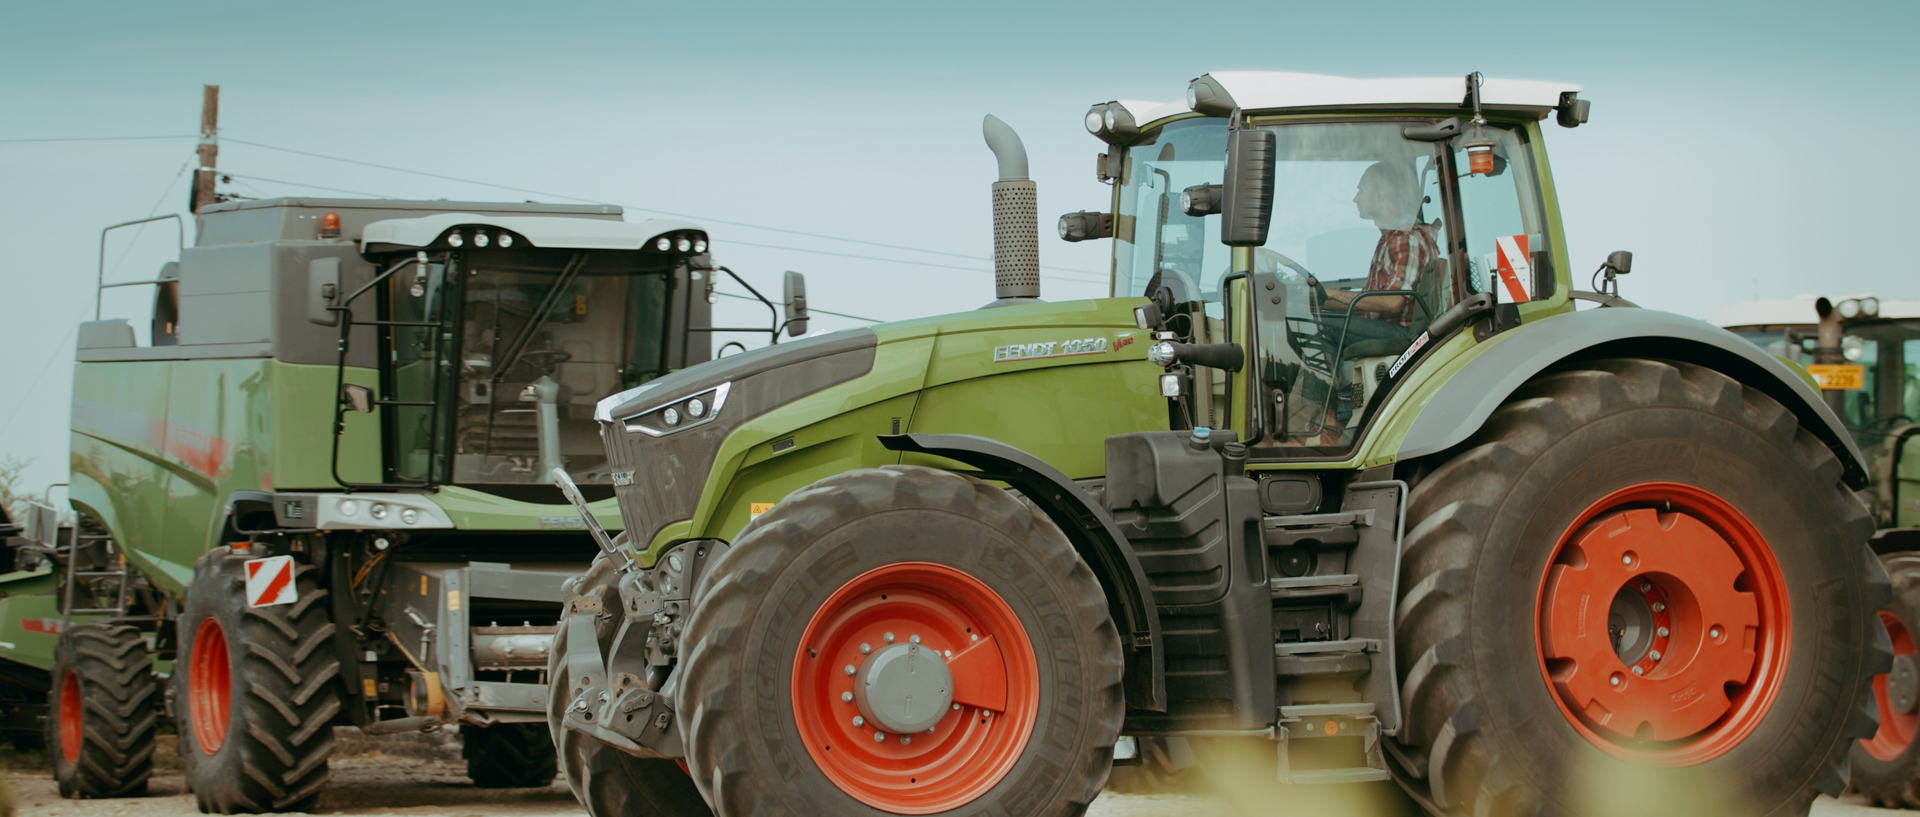 fendt 1050 tractor mewi services video by popotam productions video agency timisoara after color grading